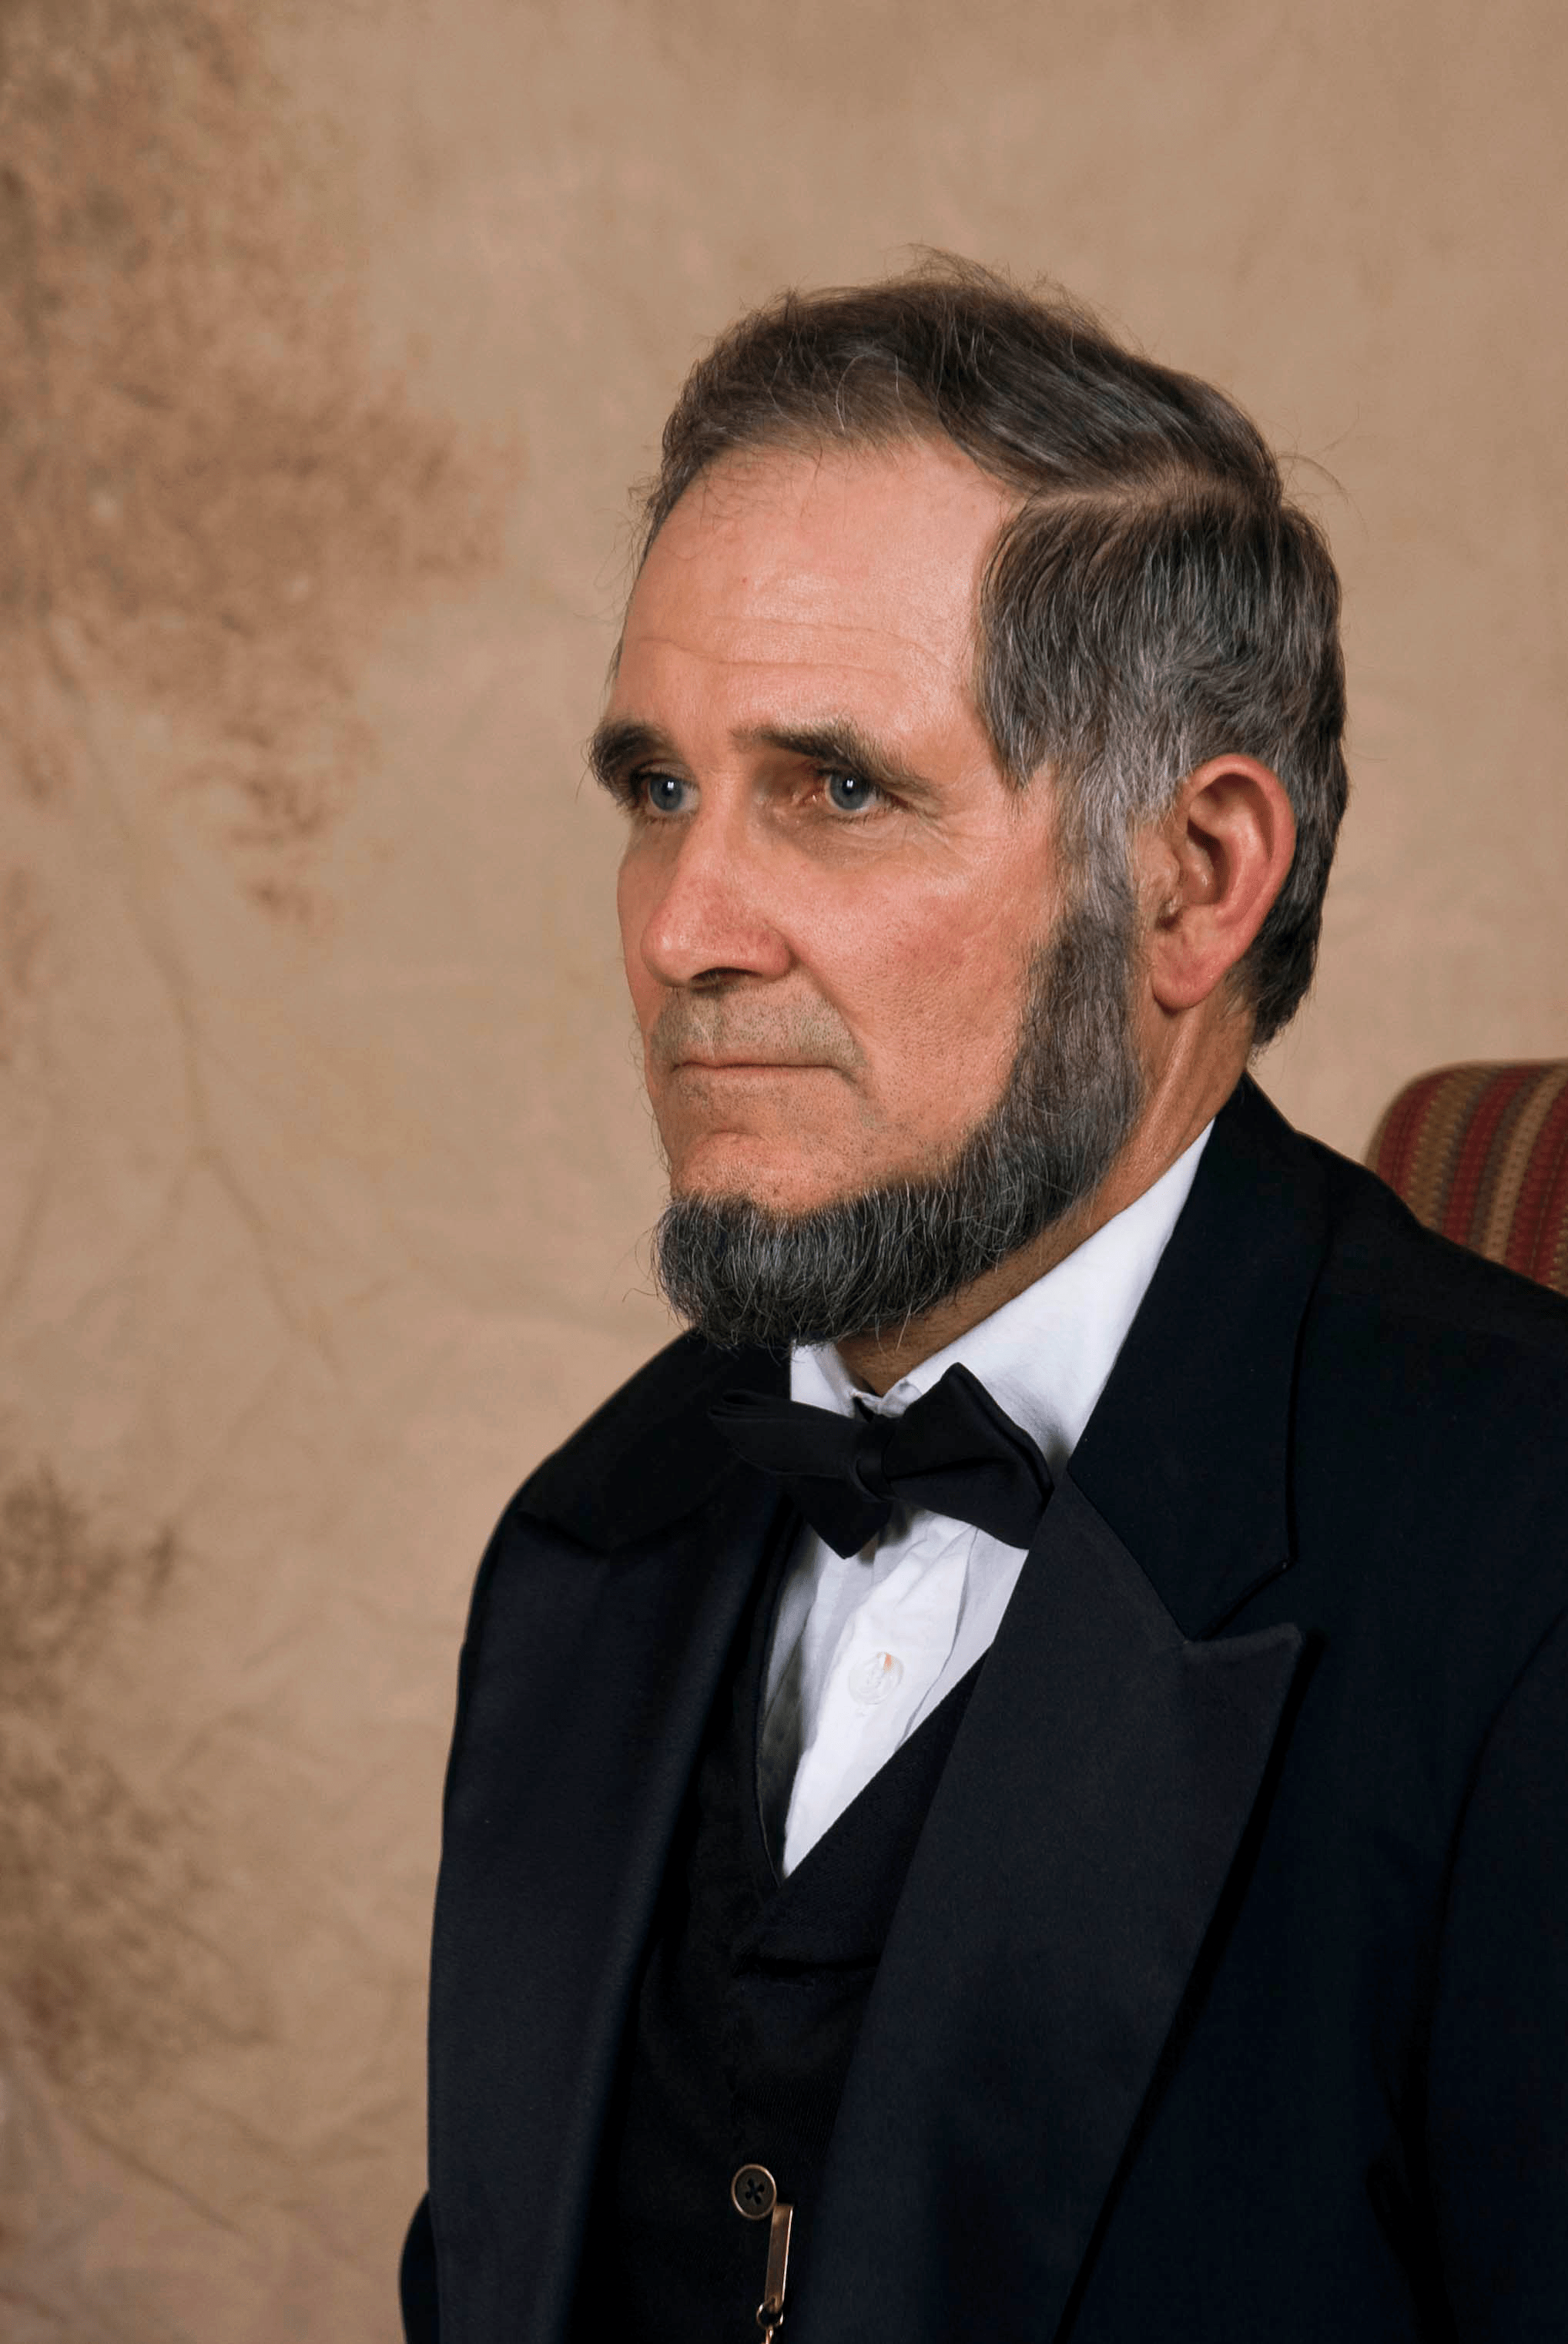 Abraham Lincoln Questions That Need Answers